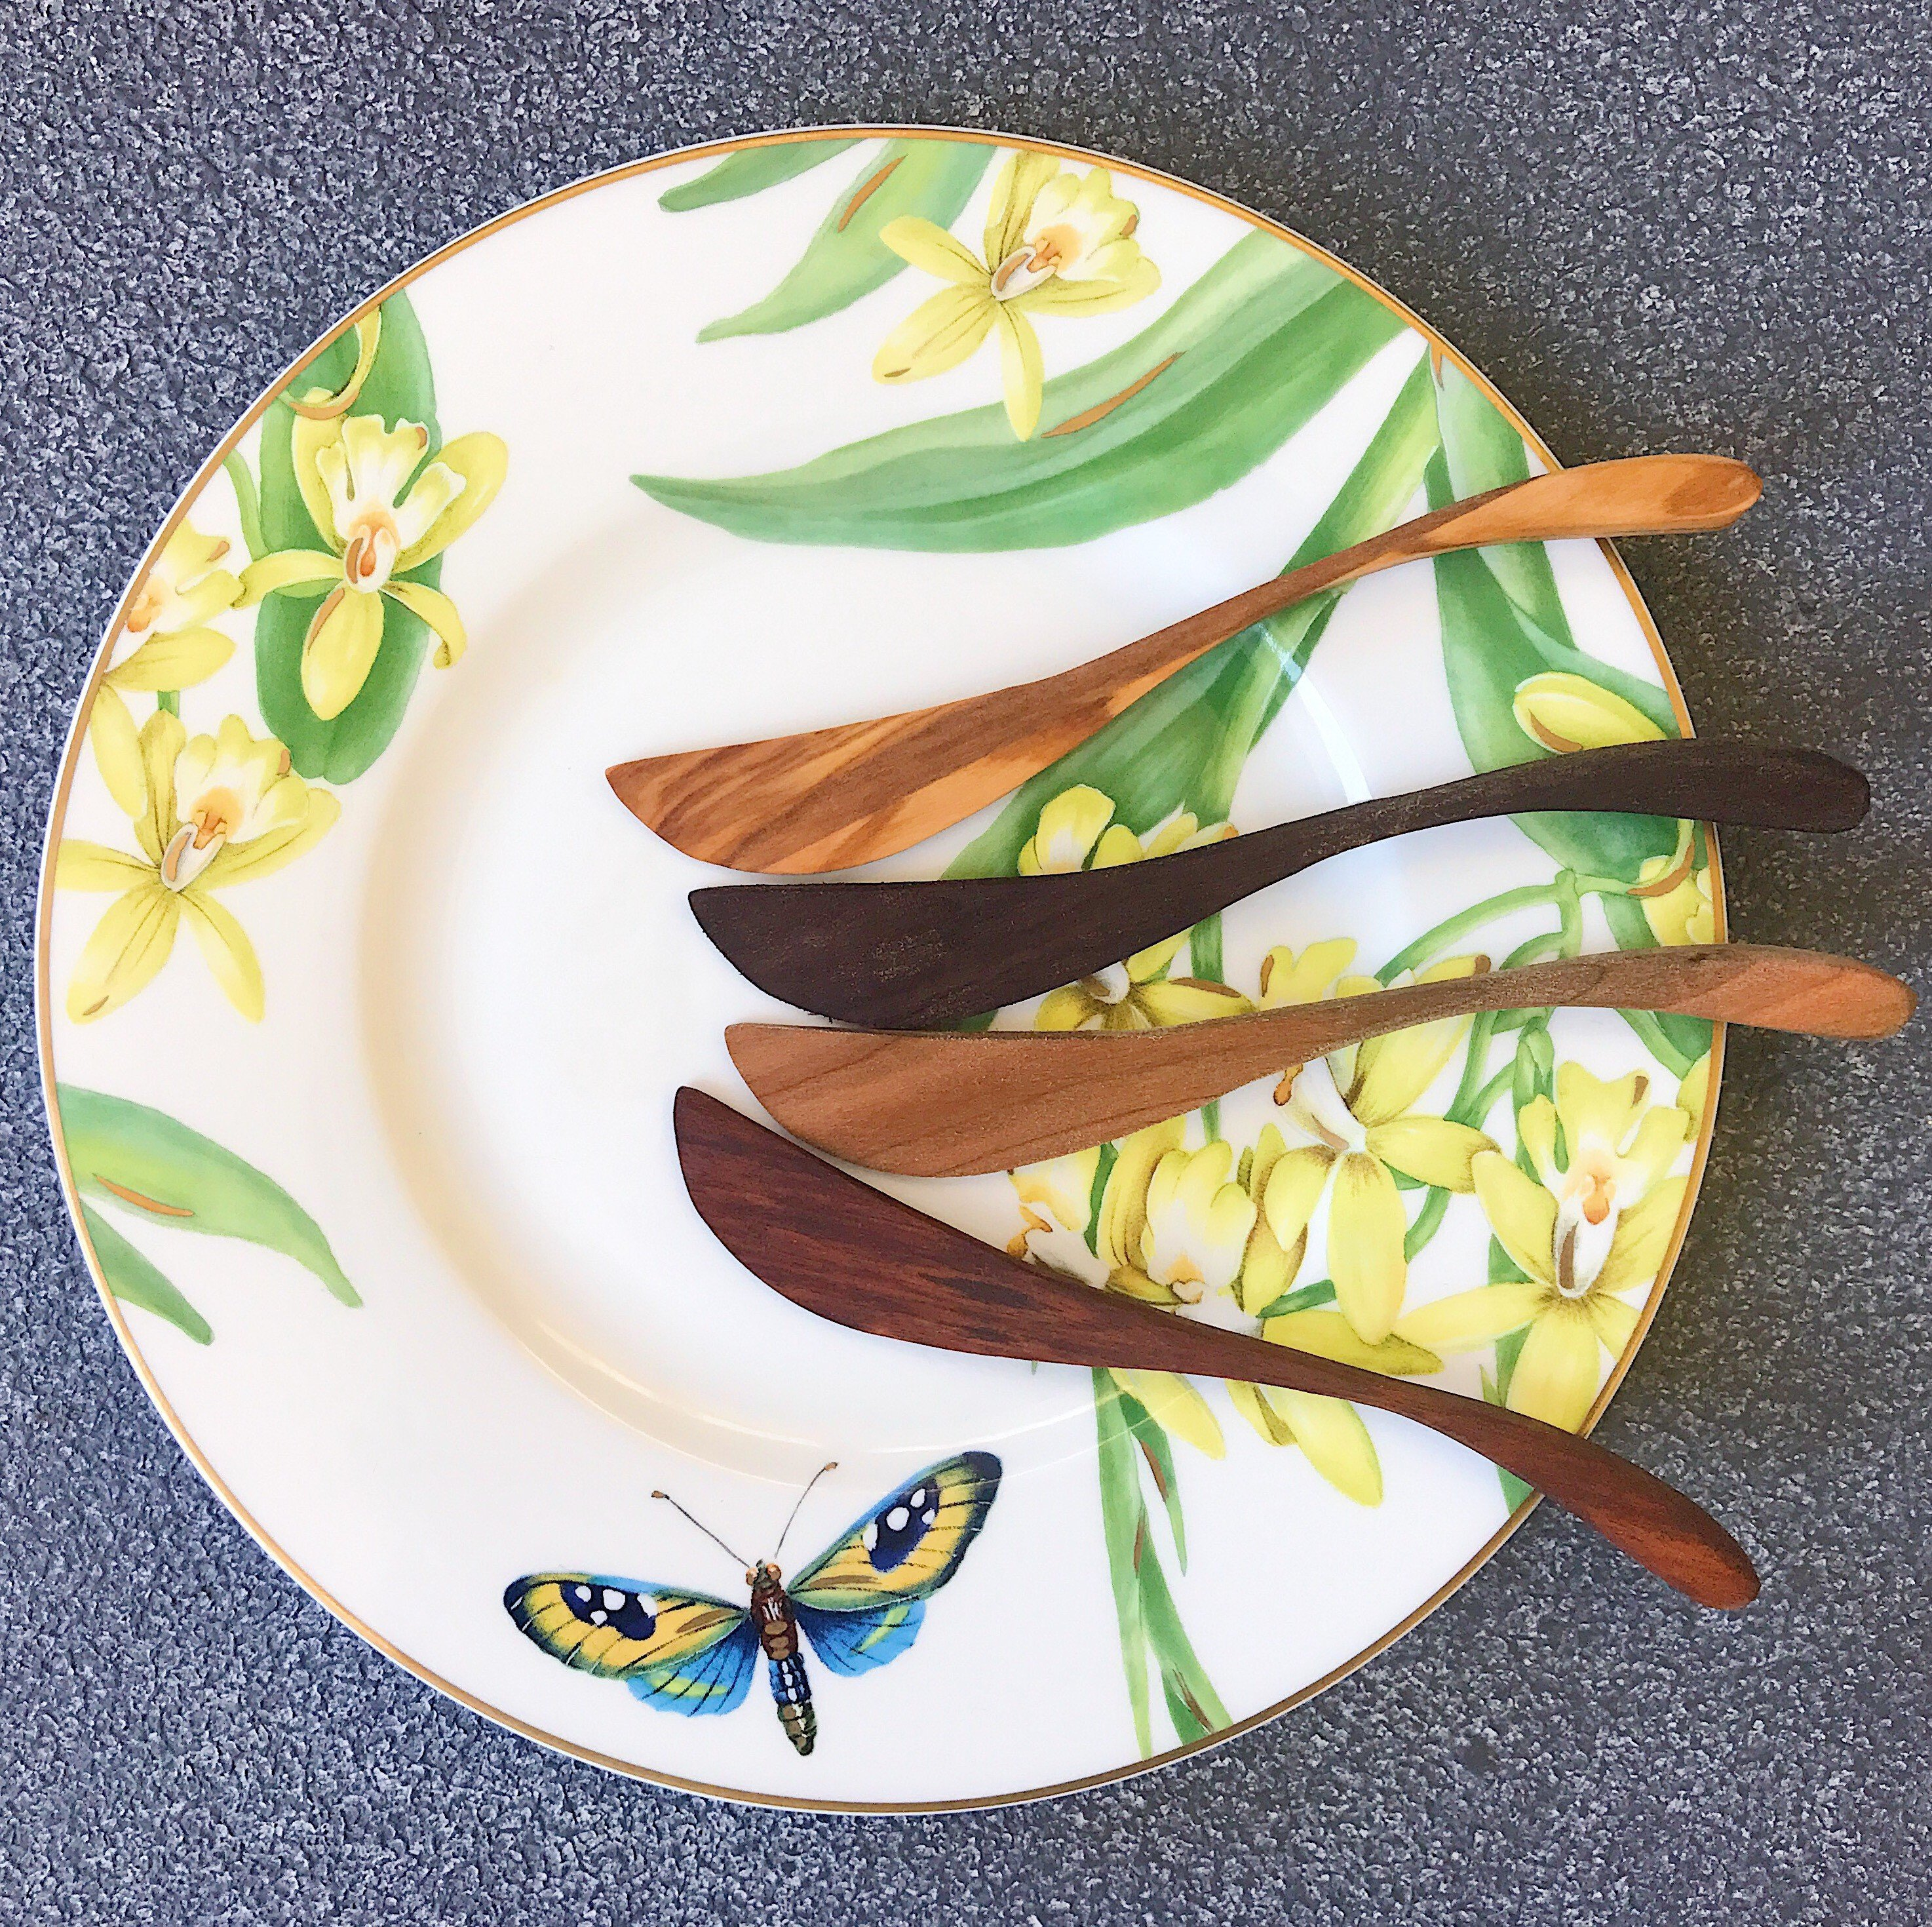 wooden spoons for food service